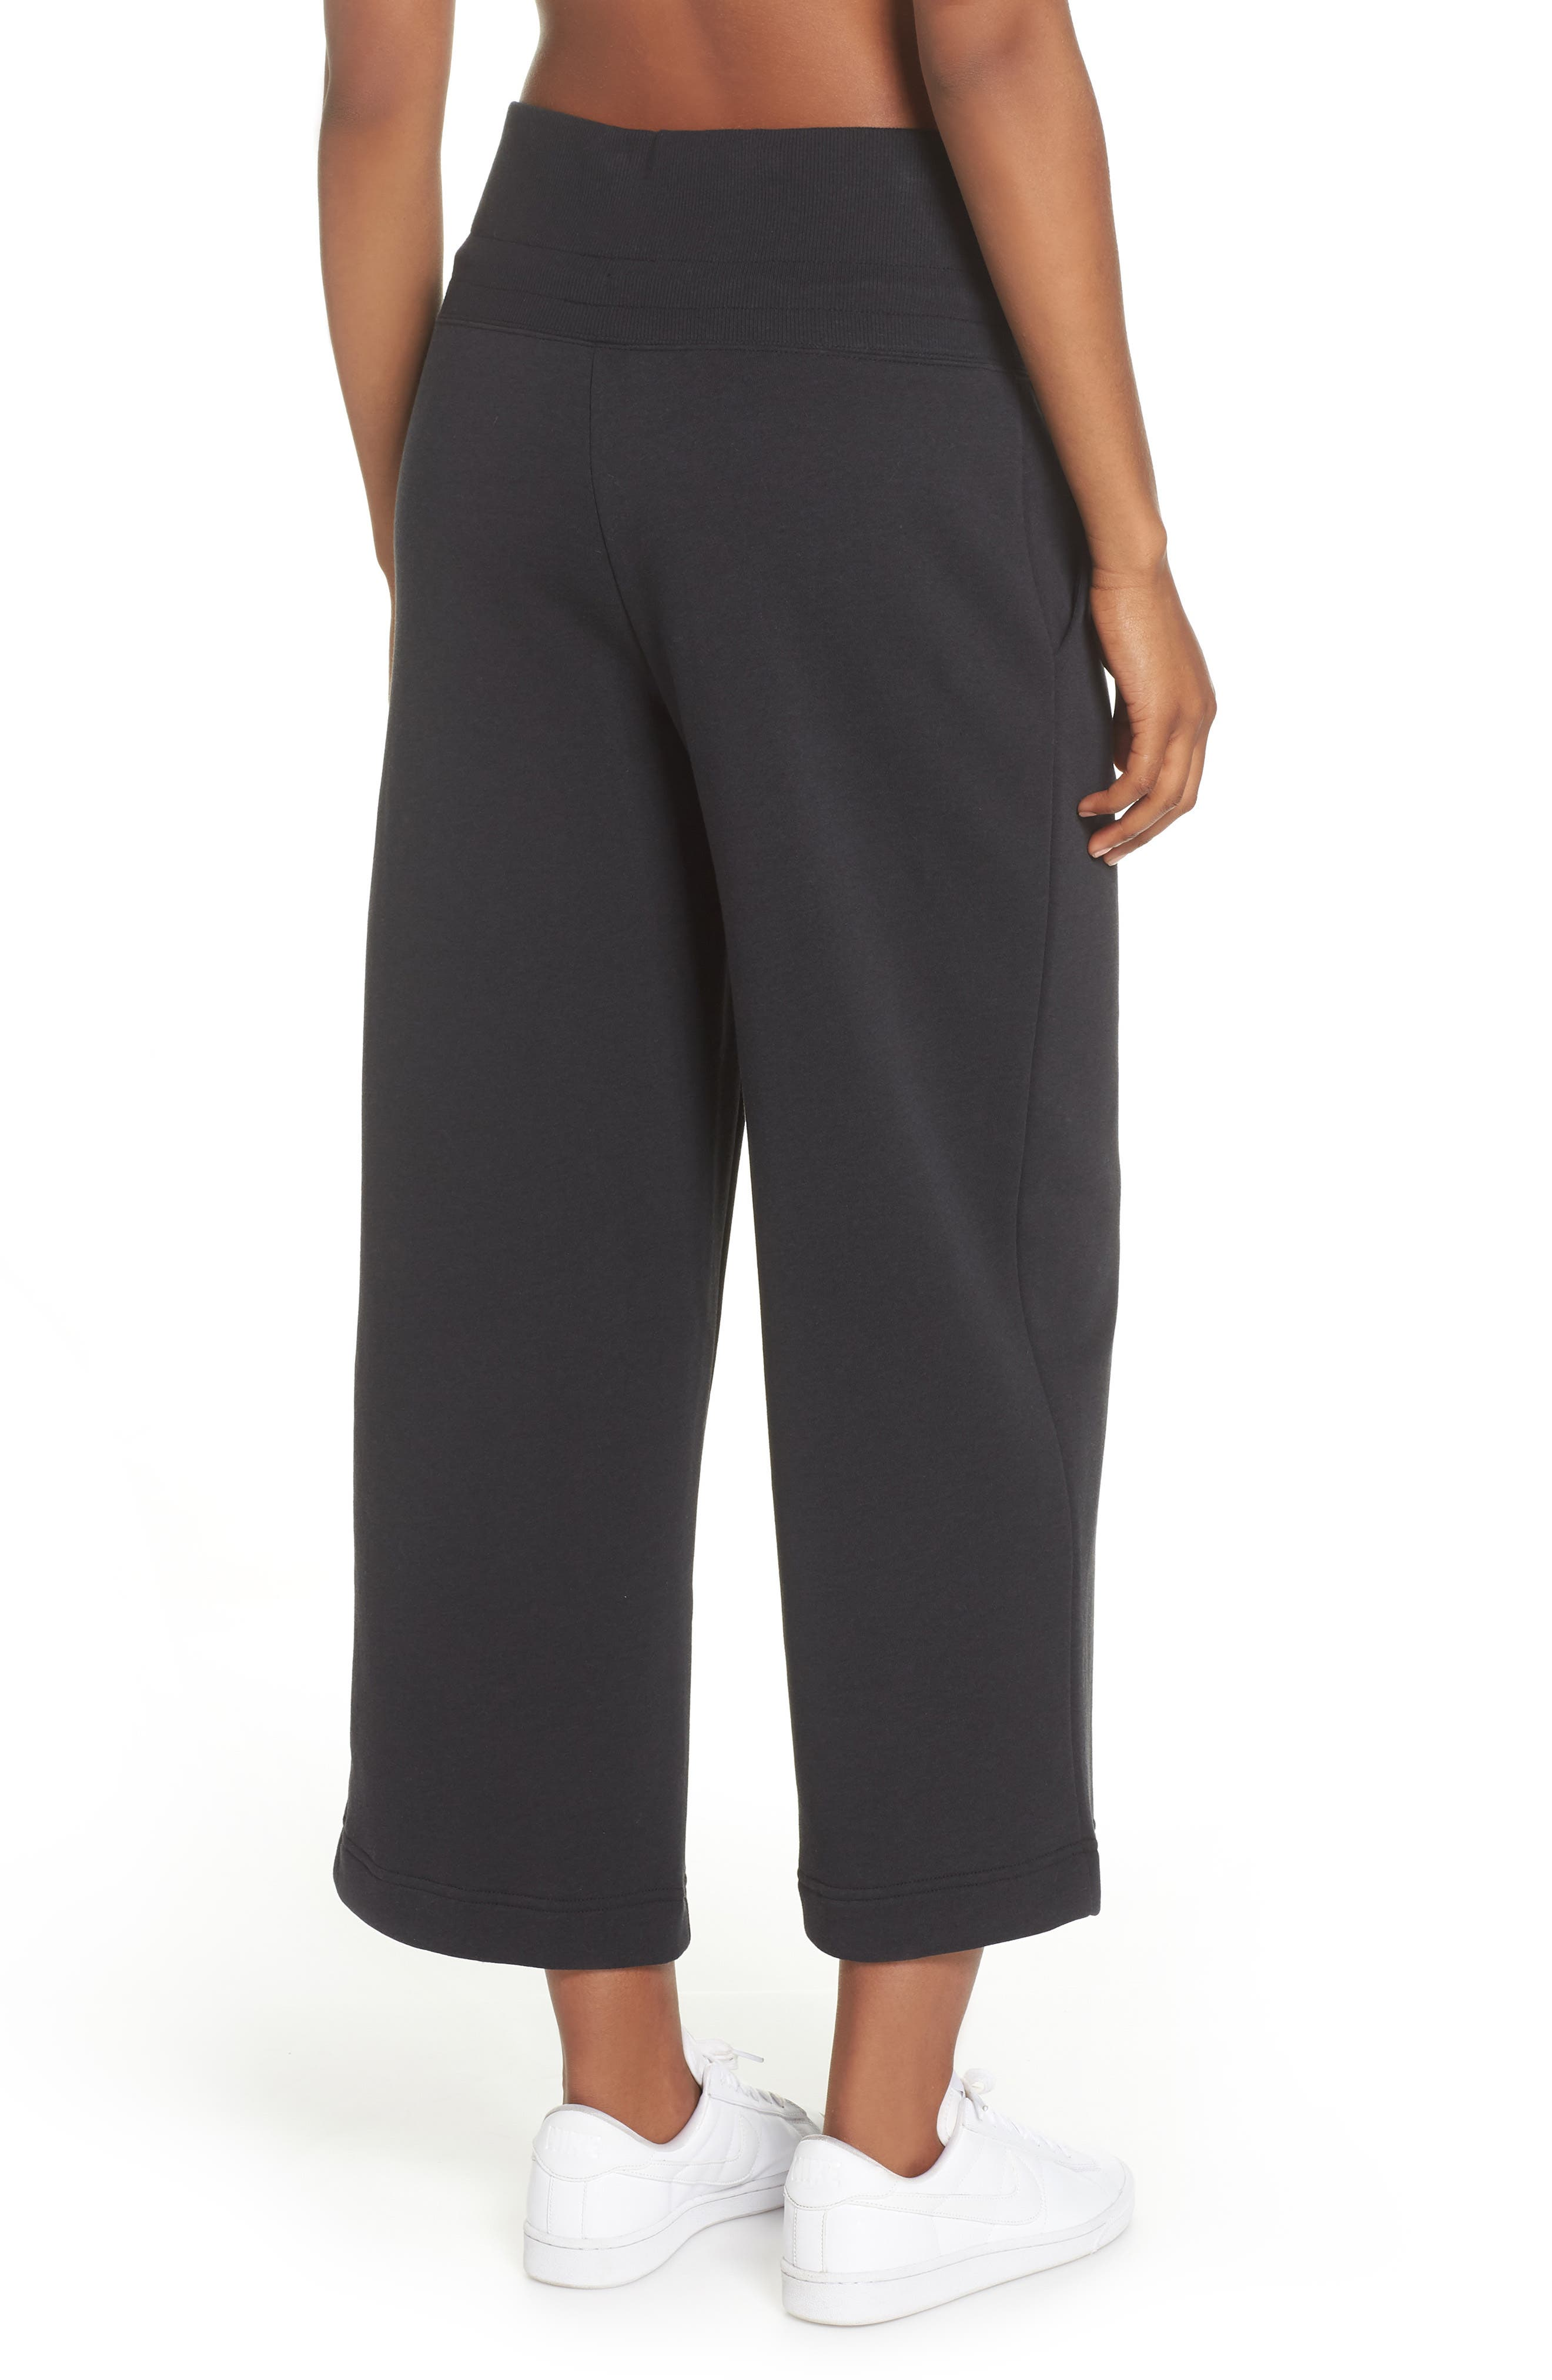 Sportswear Rally Cropped Pants,                             Alternate thumbnail 2, color,                             010